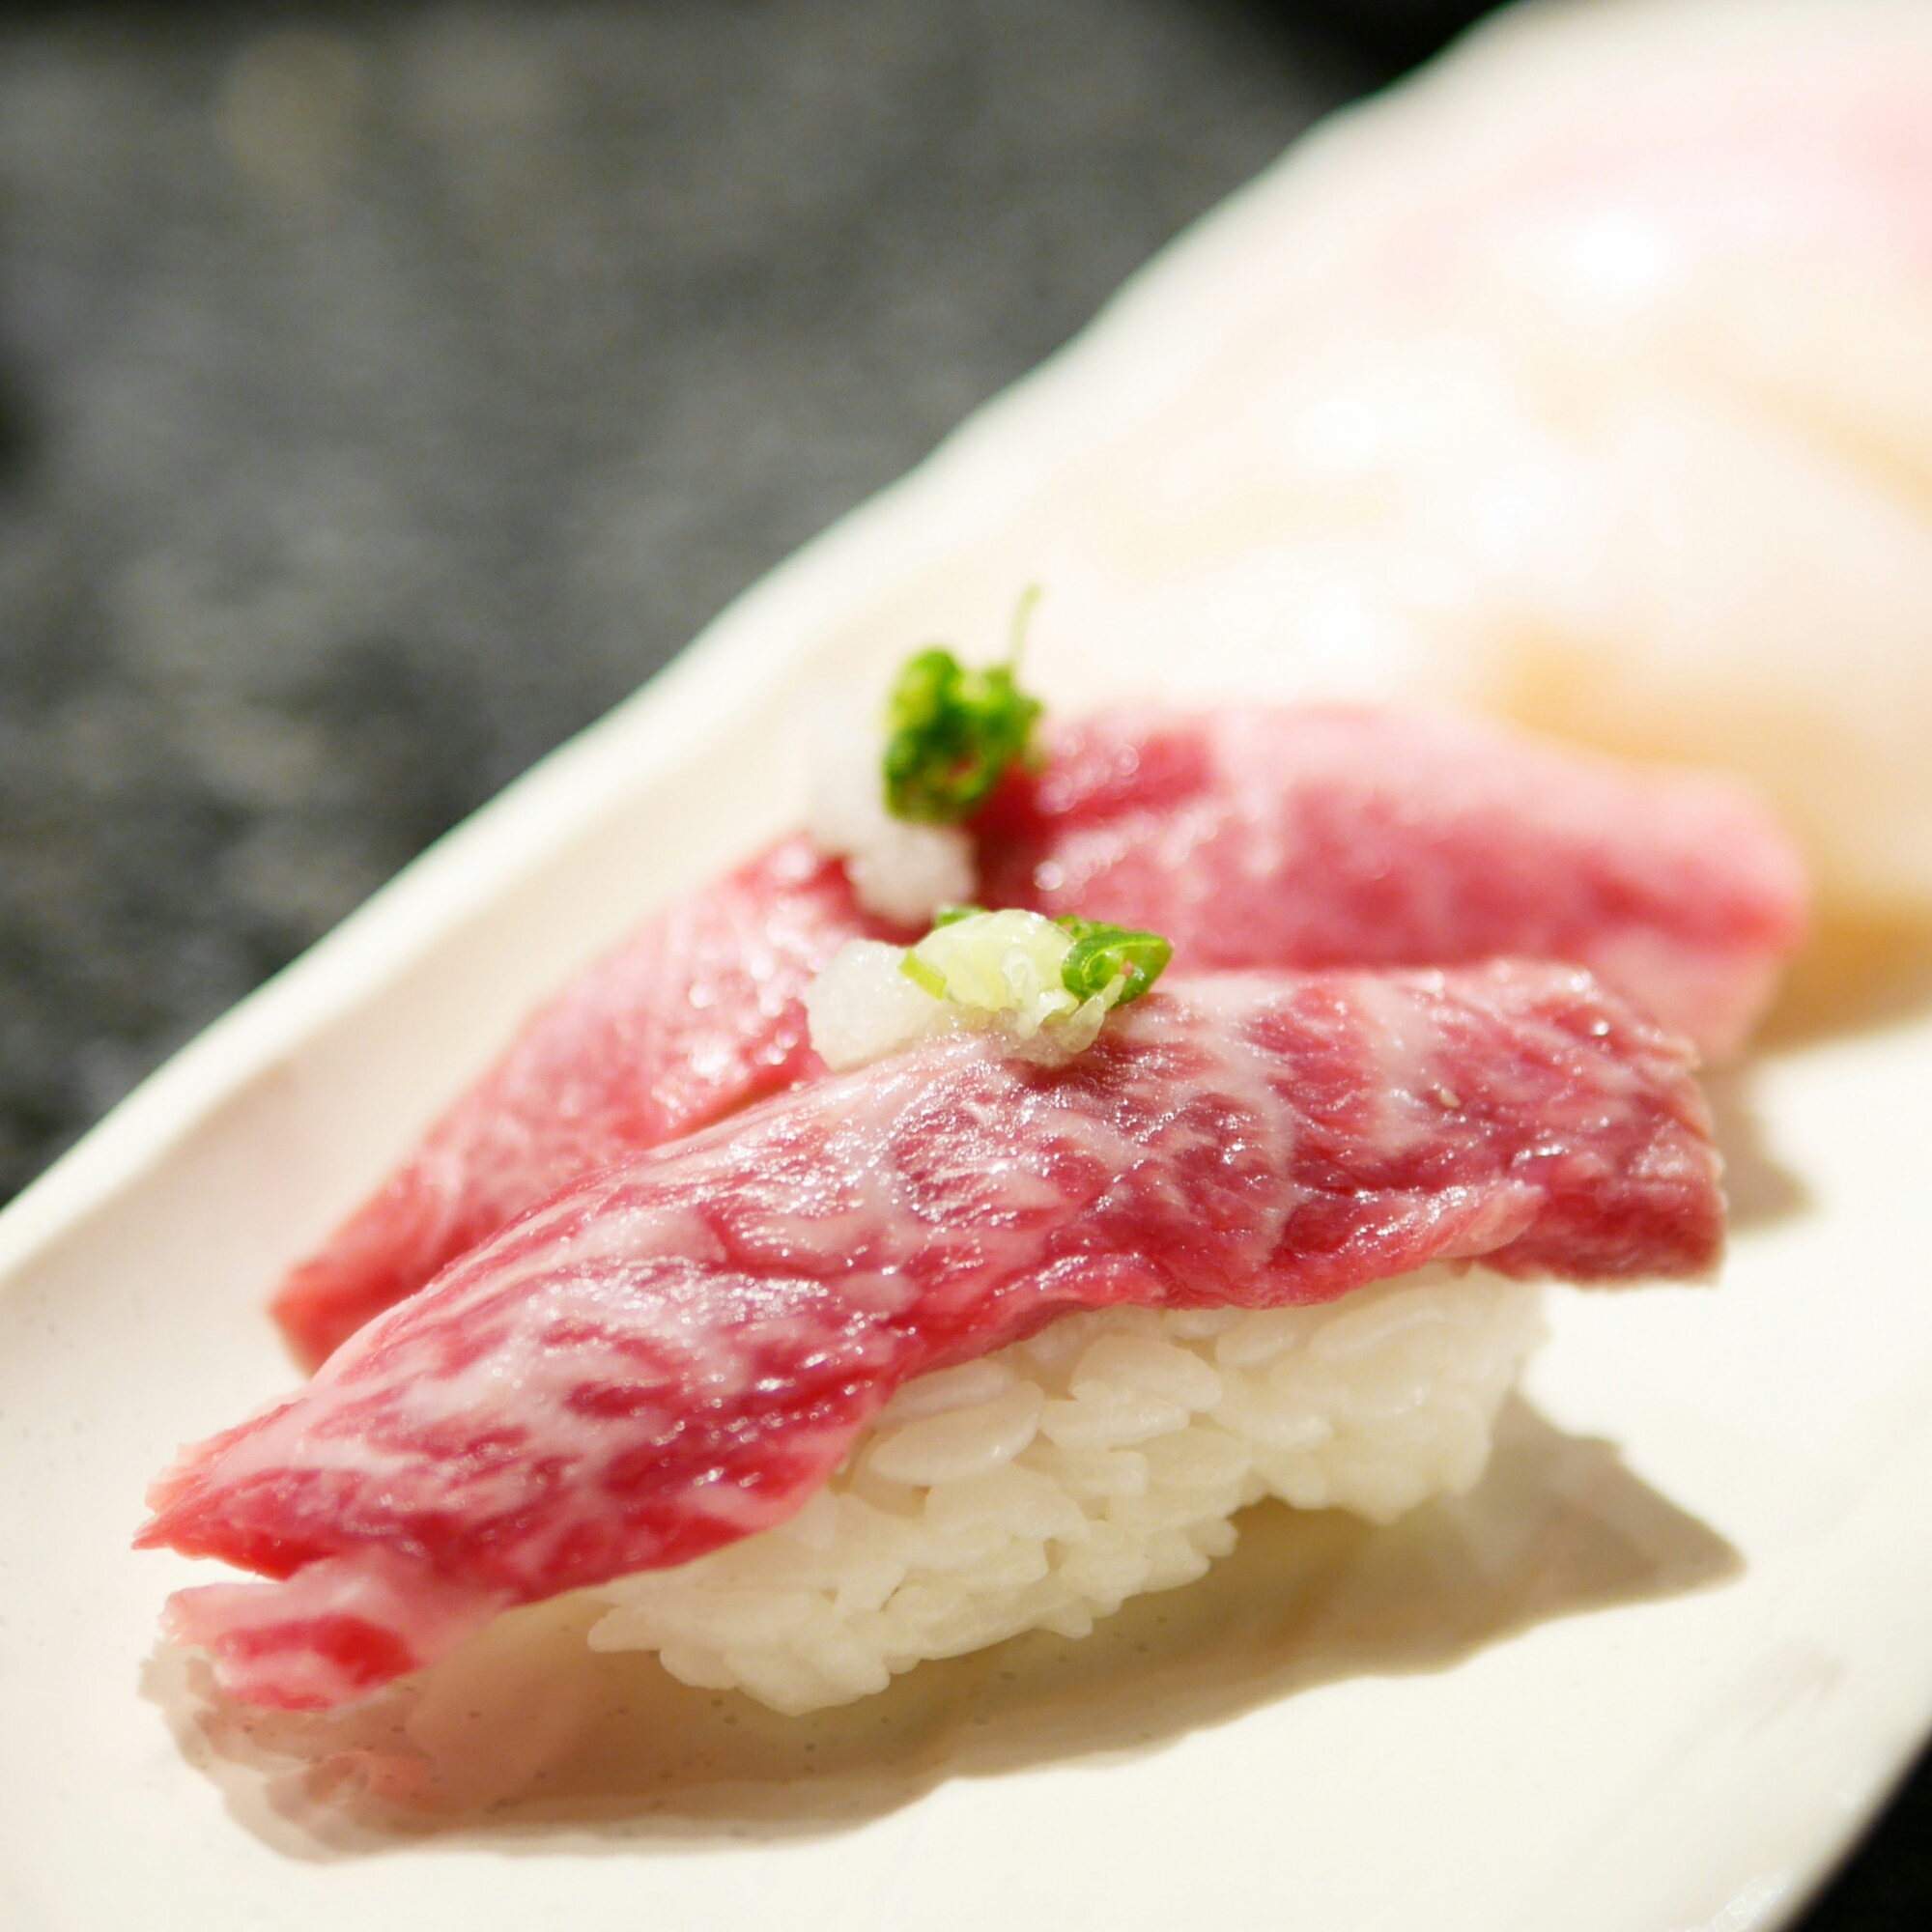 Best places to satisfy your day-to-day sushi craving | lolleroll